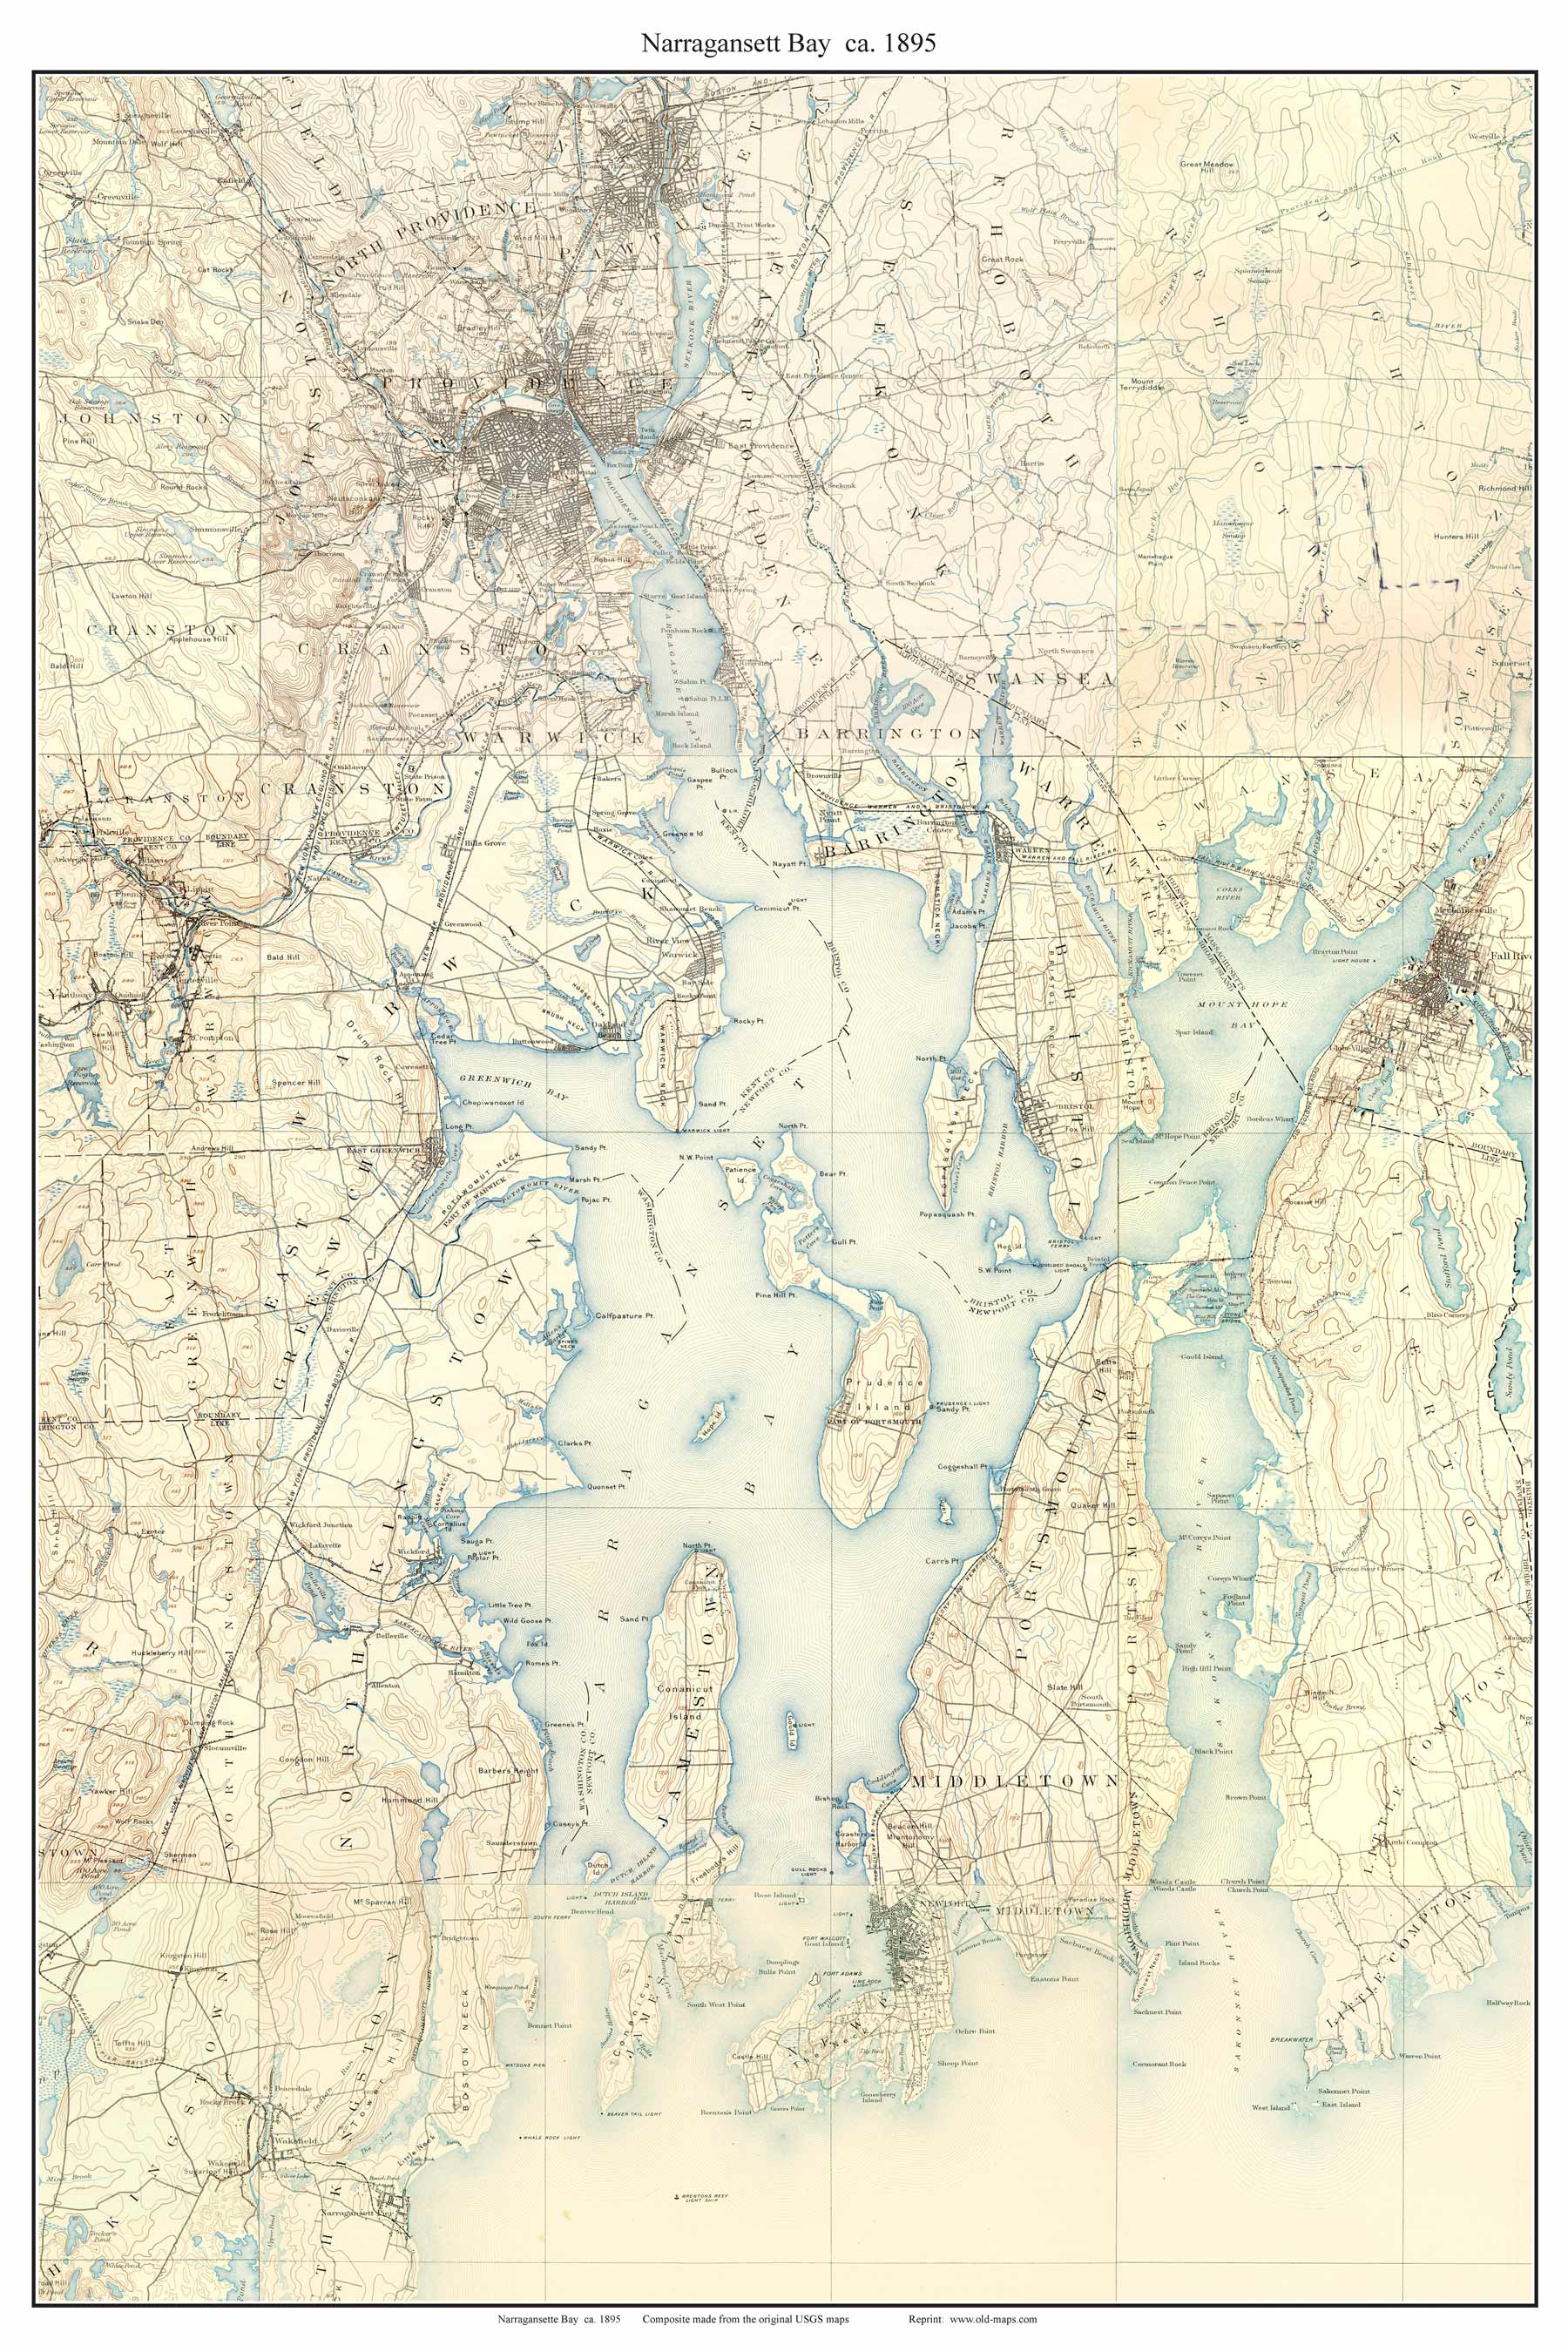 Old Rhode Island USGS Maps on map of west warwick ri, map of wakefield ri, map of cranston ri, map of american fork ut, map of ri towns, map of east greenwich ri, map of narragansett bay ri, map of east bay bike path ri, map of pawtucket ri, map of arnoldsburg wv, map of south providence ri, map of browning mt, map of woonsocket ri, map of shannock ri, map of adamsville ri, map of davisville ri, map of spring lake ri, map of south kingstown ri, map of block island ri, map of north kingstown ri,